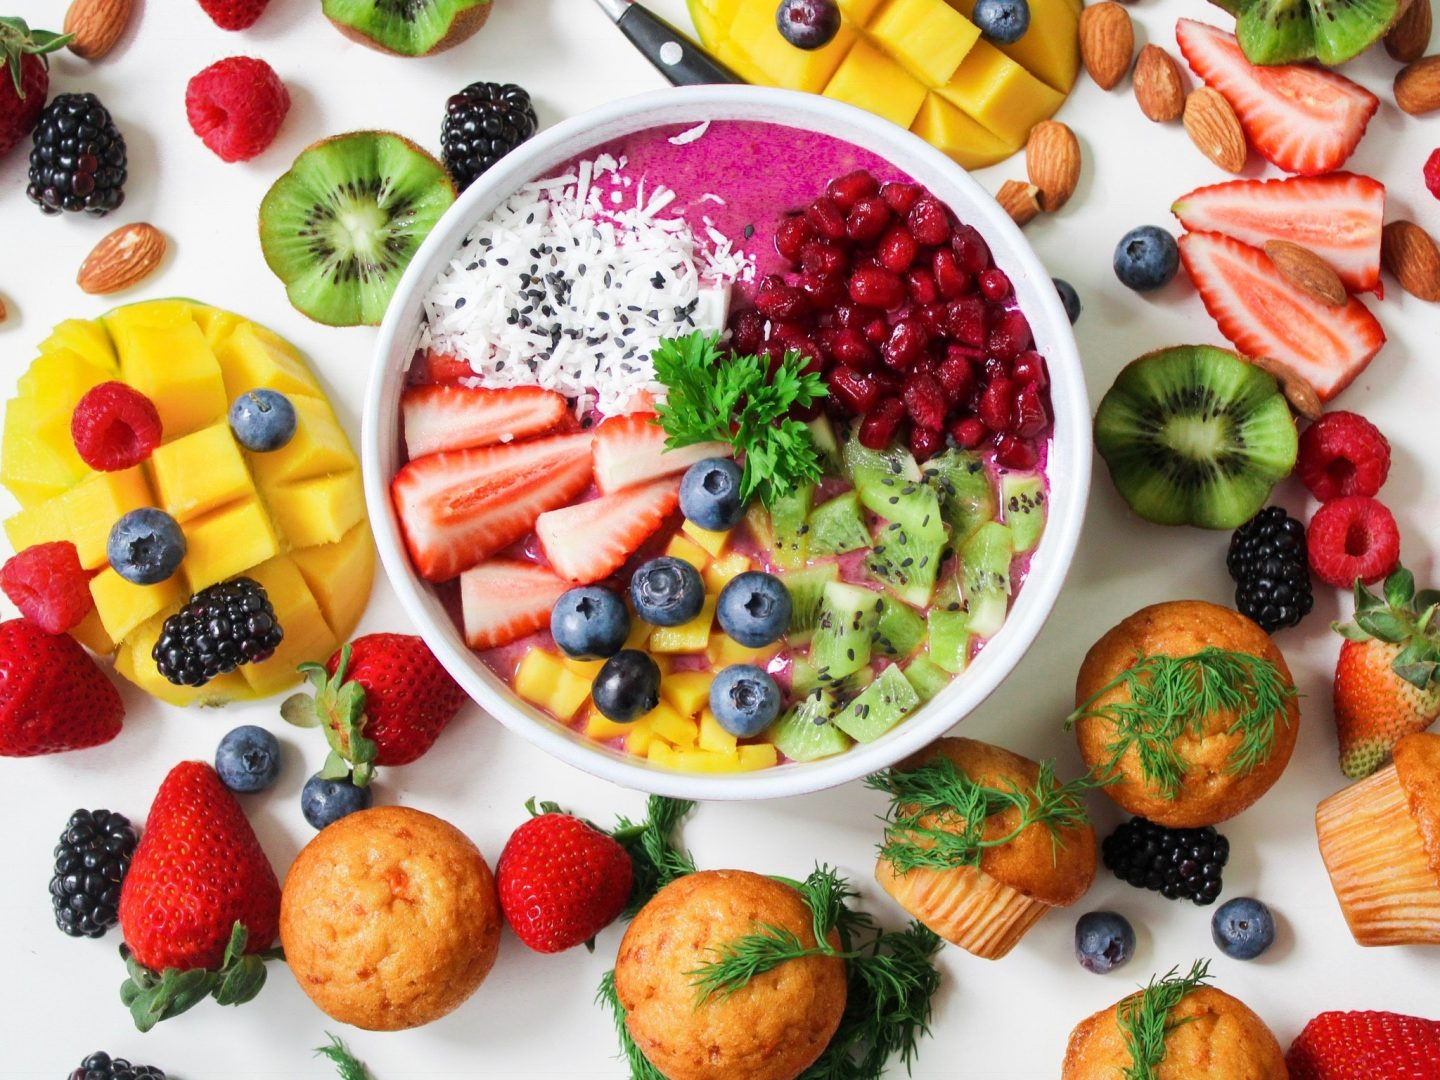 How to Encourage Healthier Habits for the Whole Family